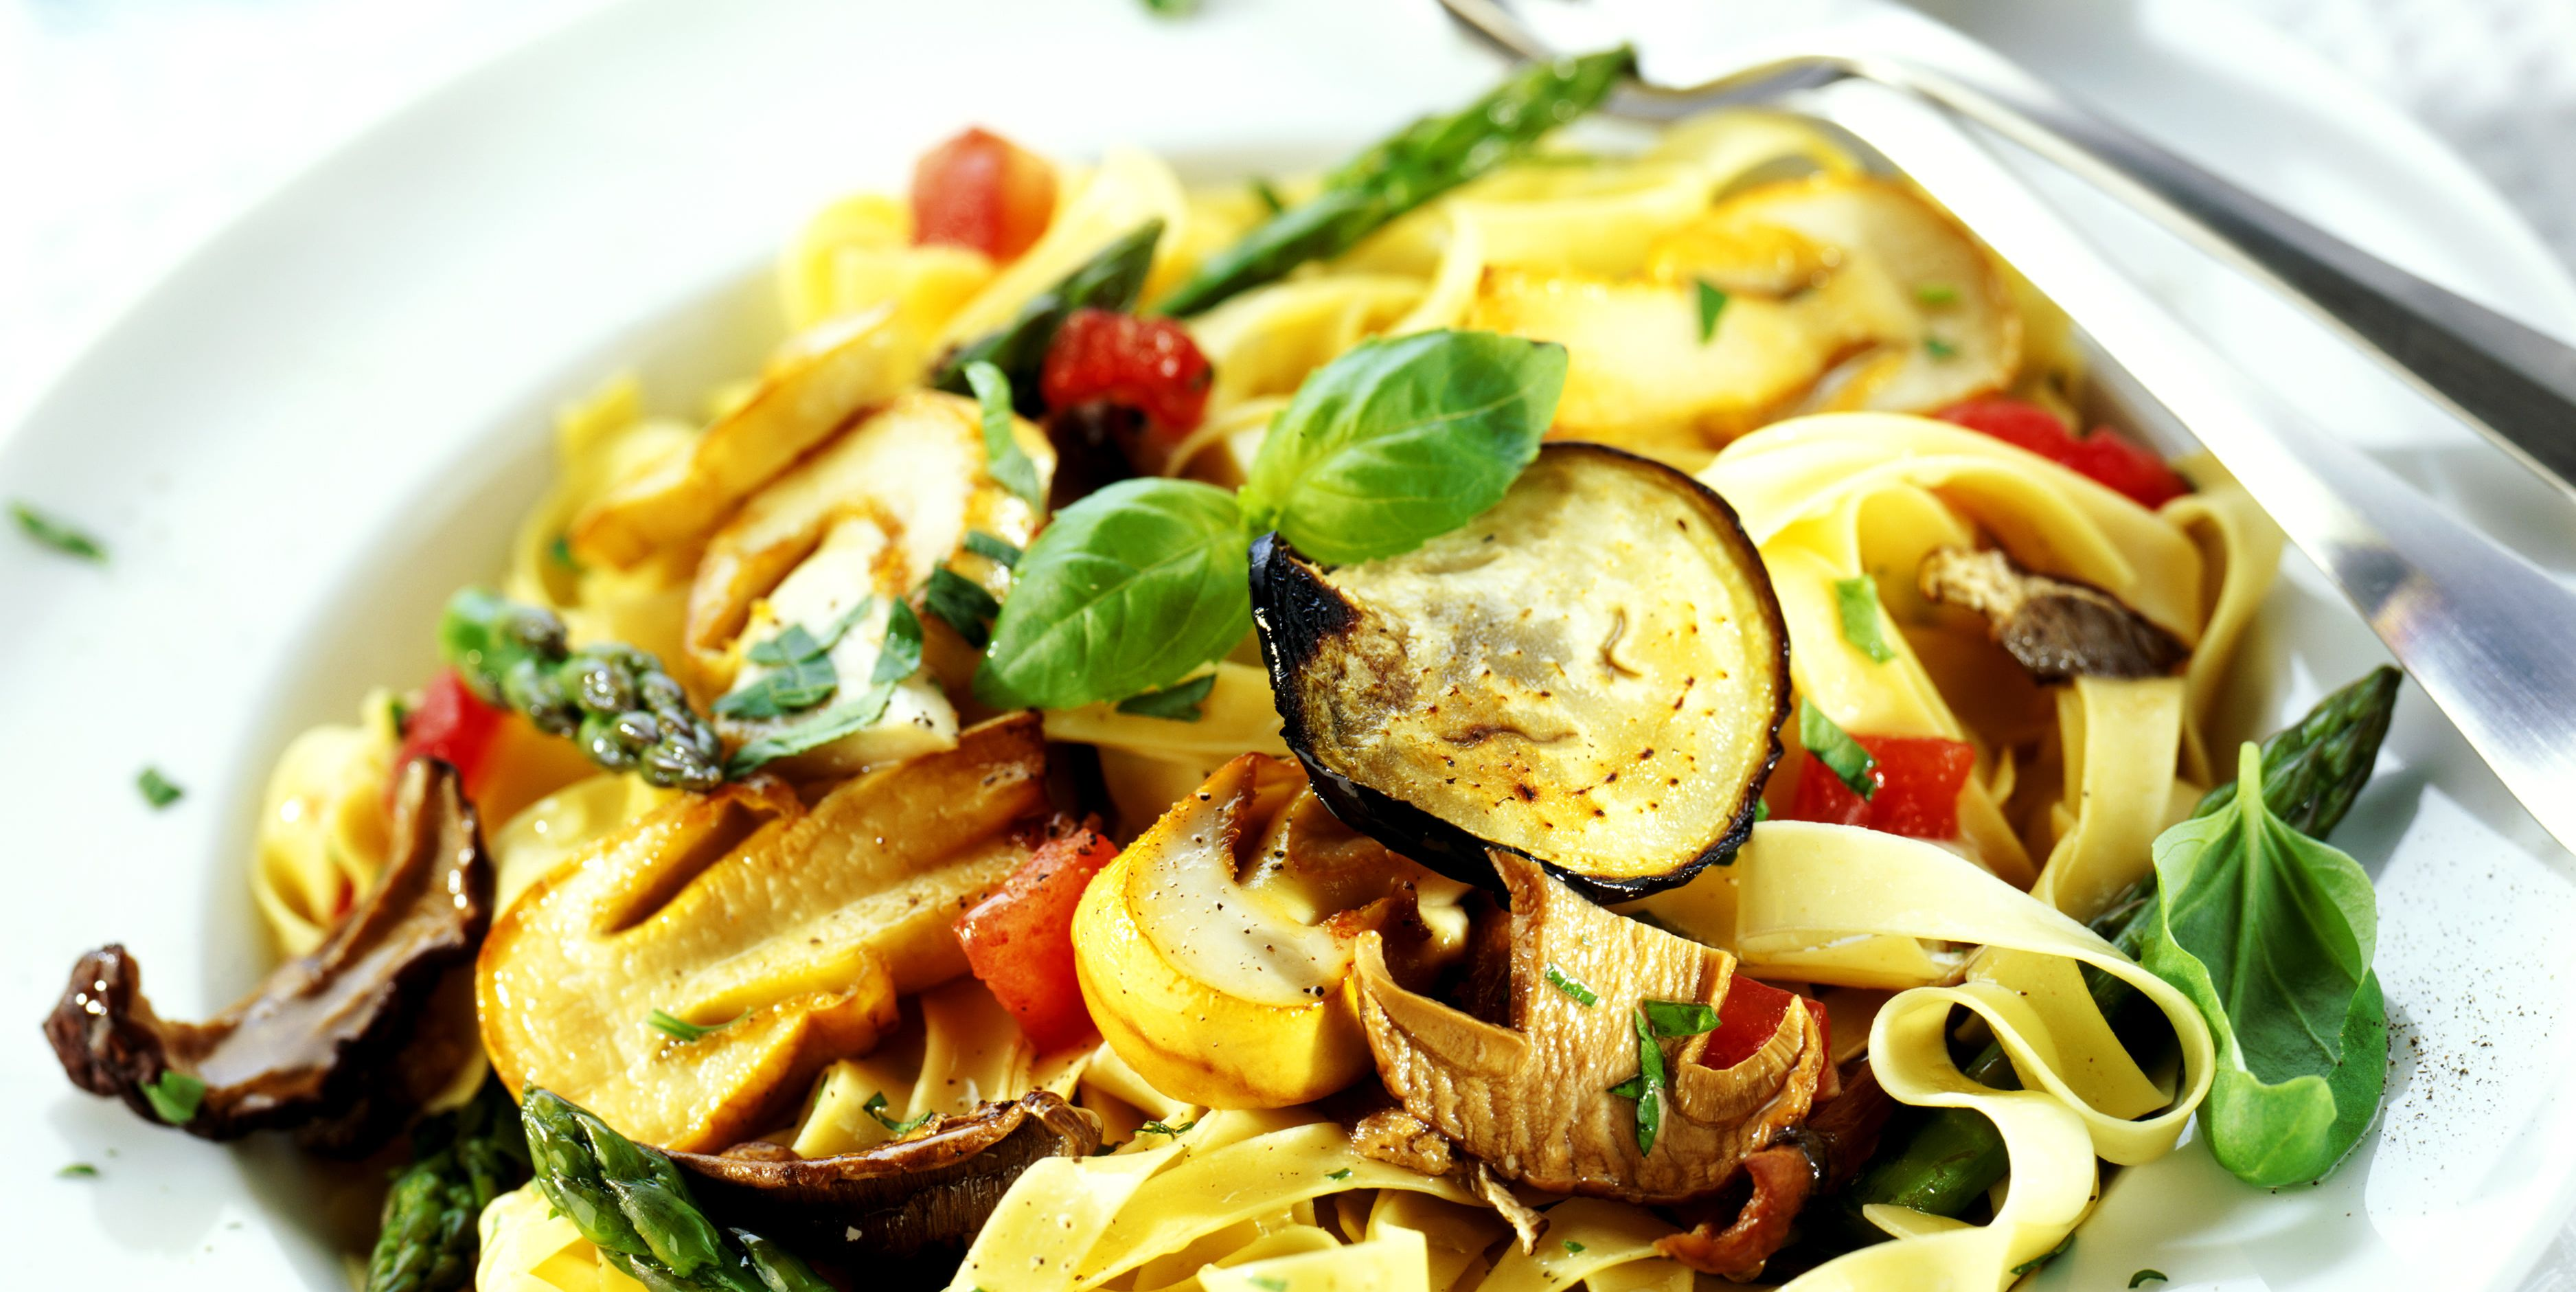 Fettucine with roasted Mediterranean vegetables